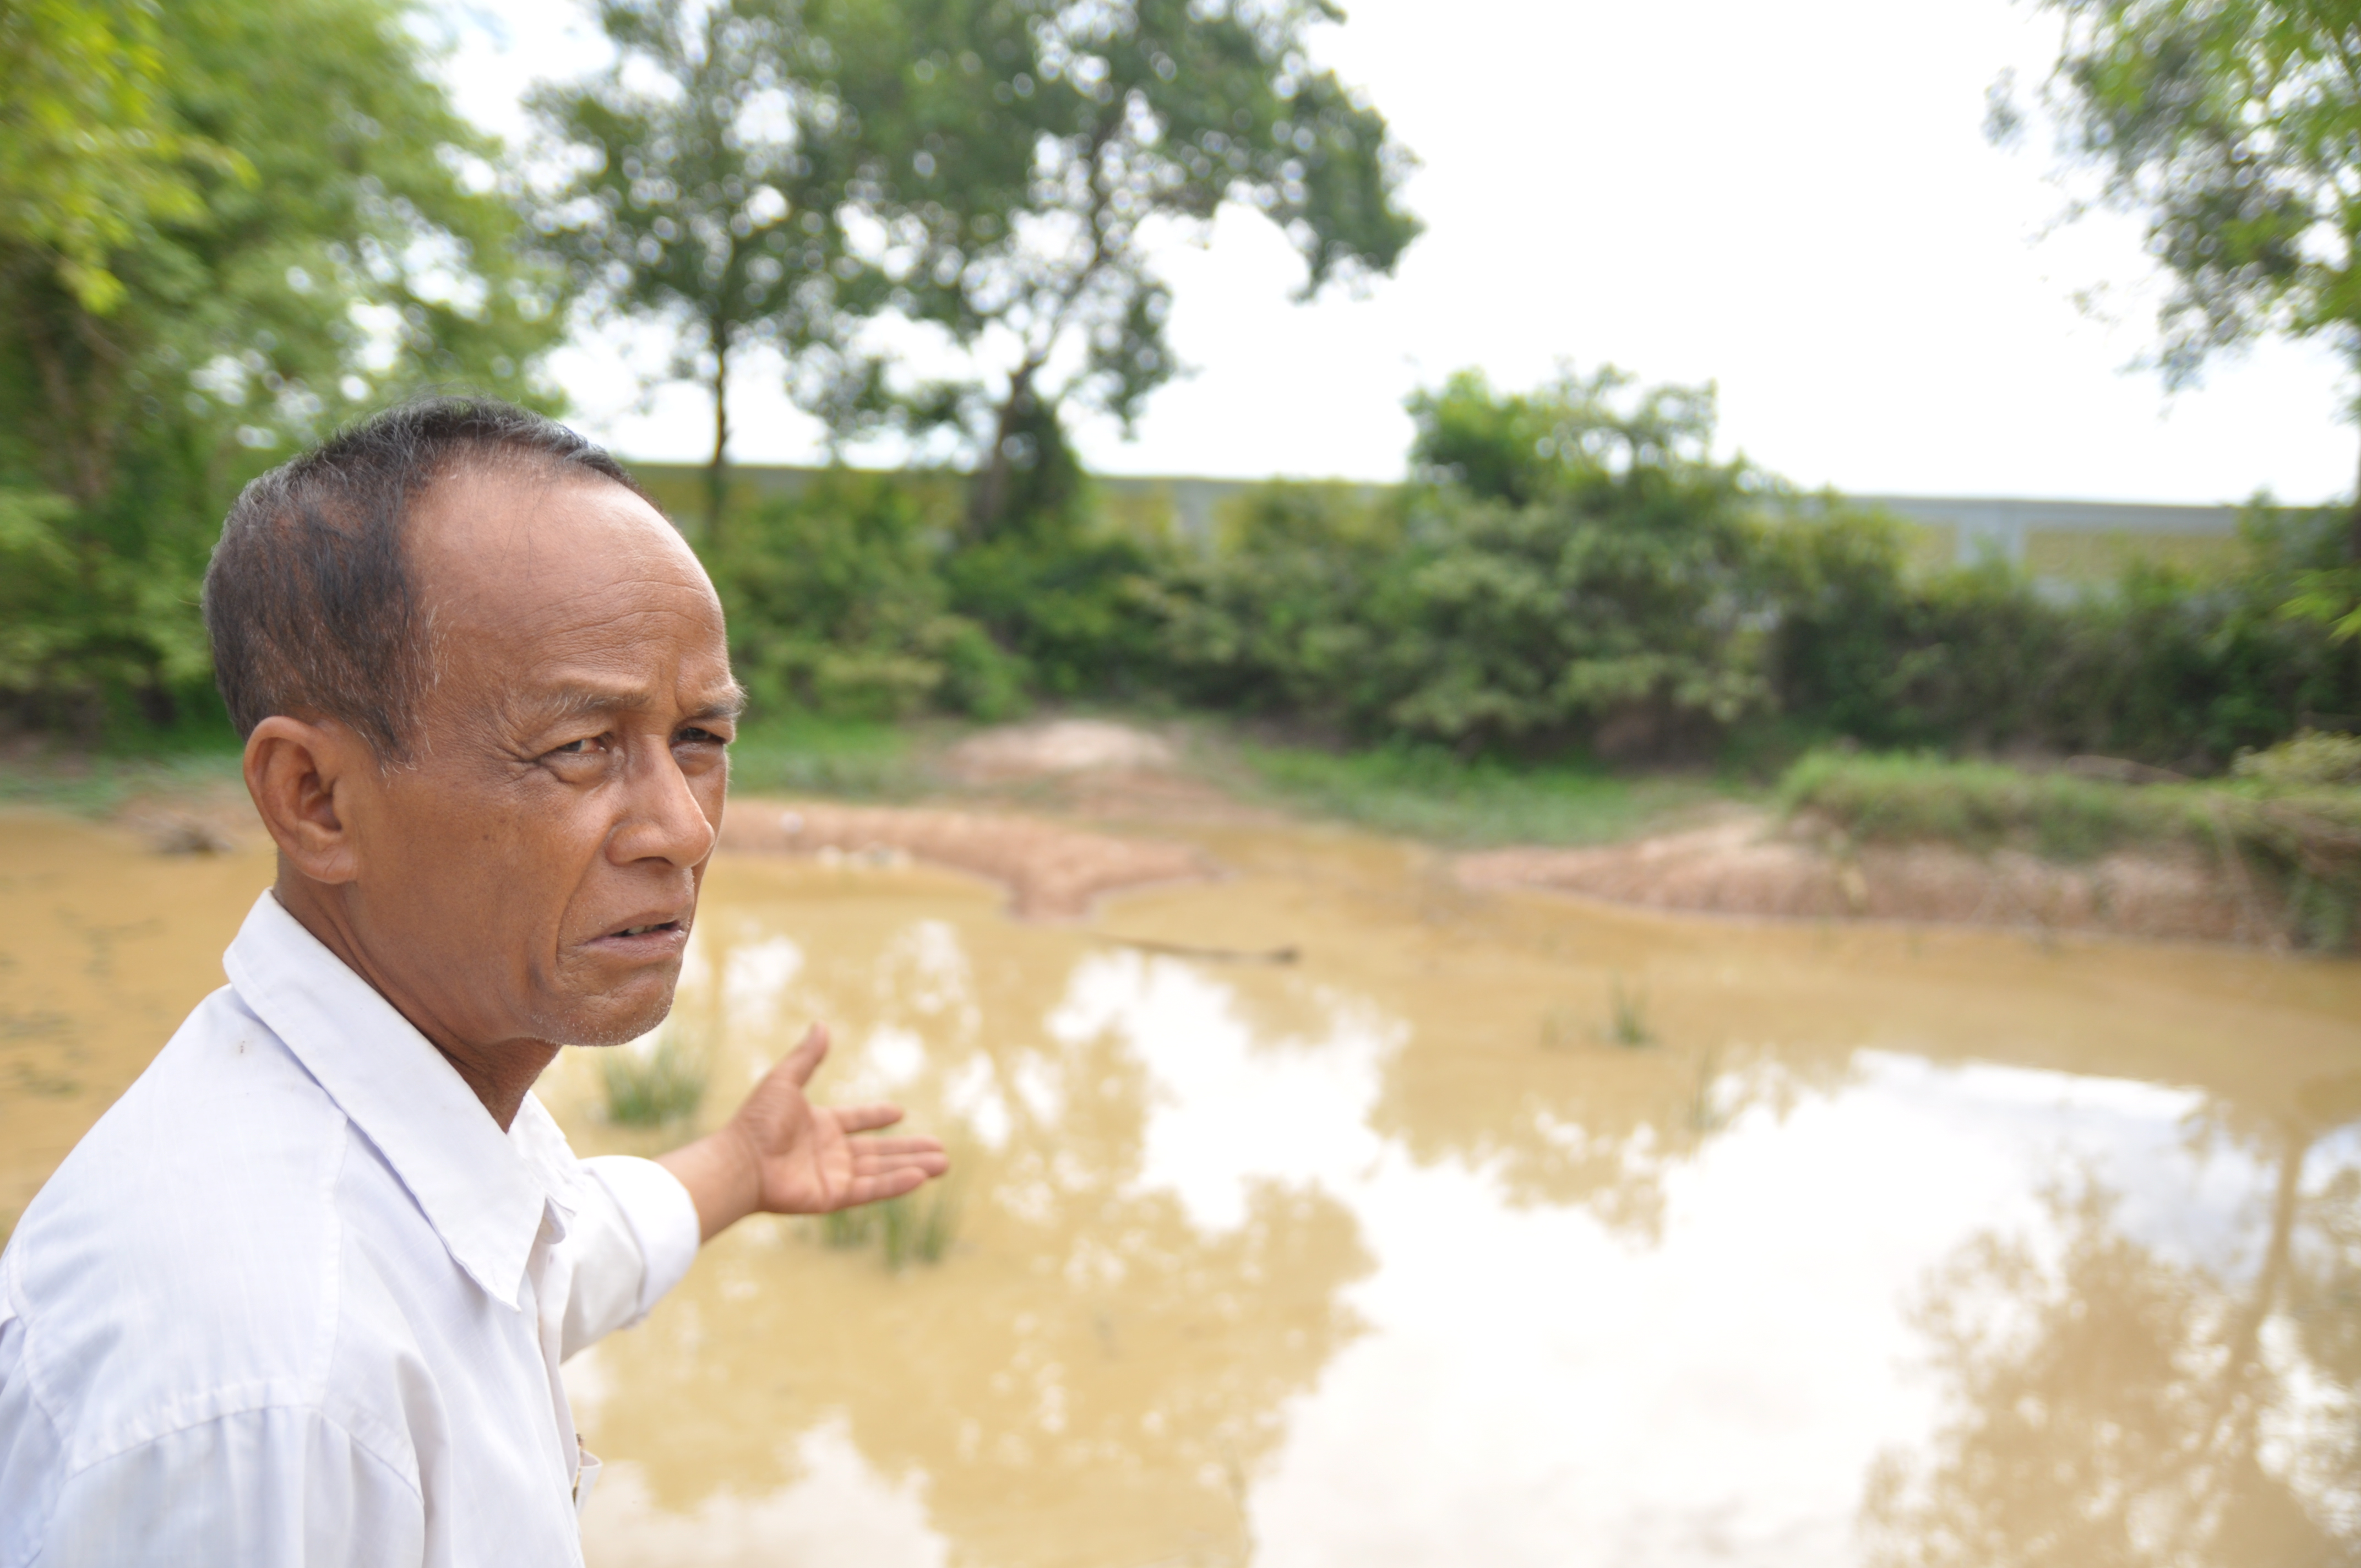 Tun Soun, a Khmer Krom survivor, points to one of the mass grave sites near Wat Pratheat (pagoda) in Kiri Vong district, Takeo province. The area was one of Cambodia's most notorious prison and torture centres.